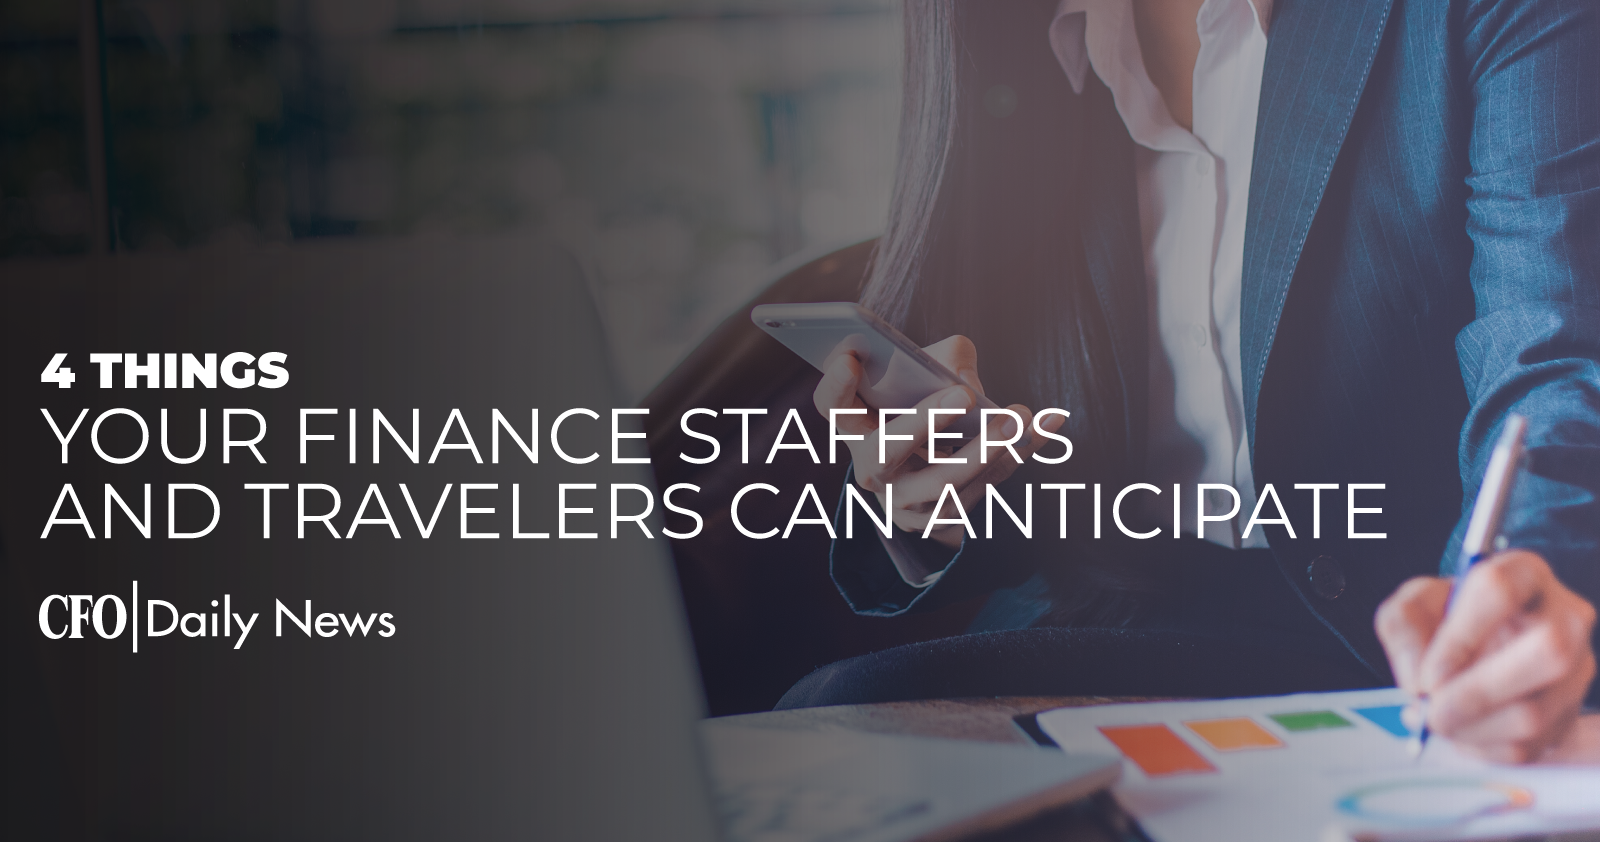 4 Things Your Finance Staffers And Travelers Can Anticipate